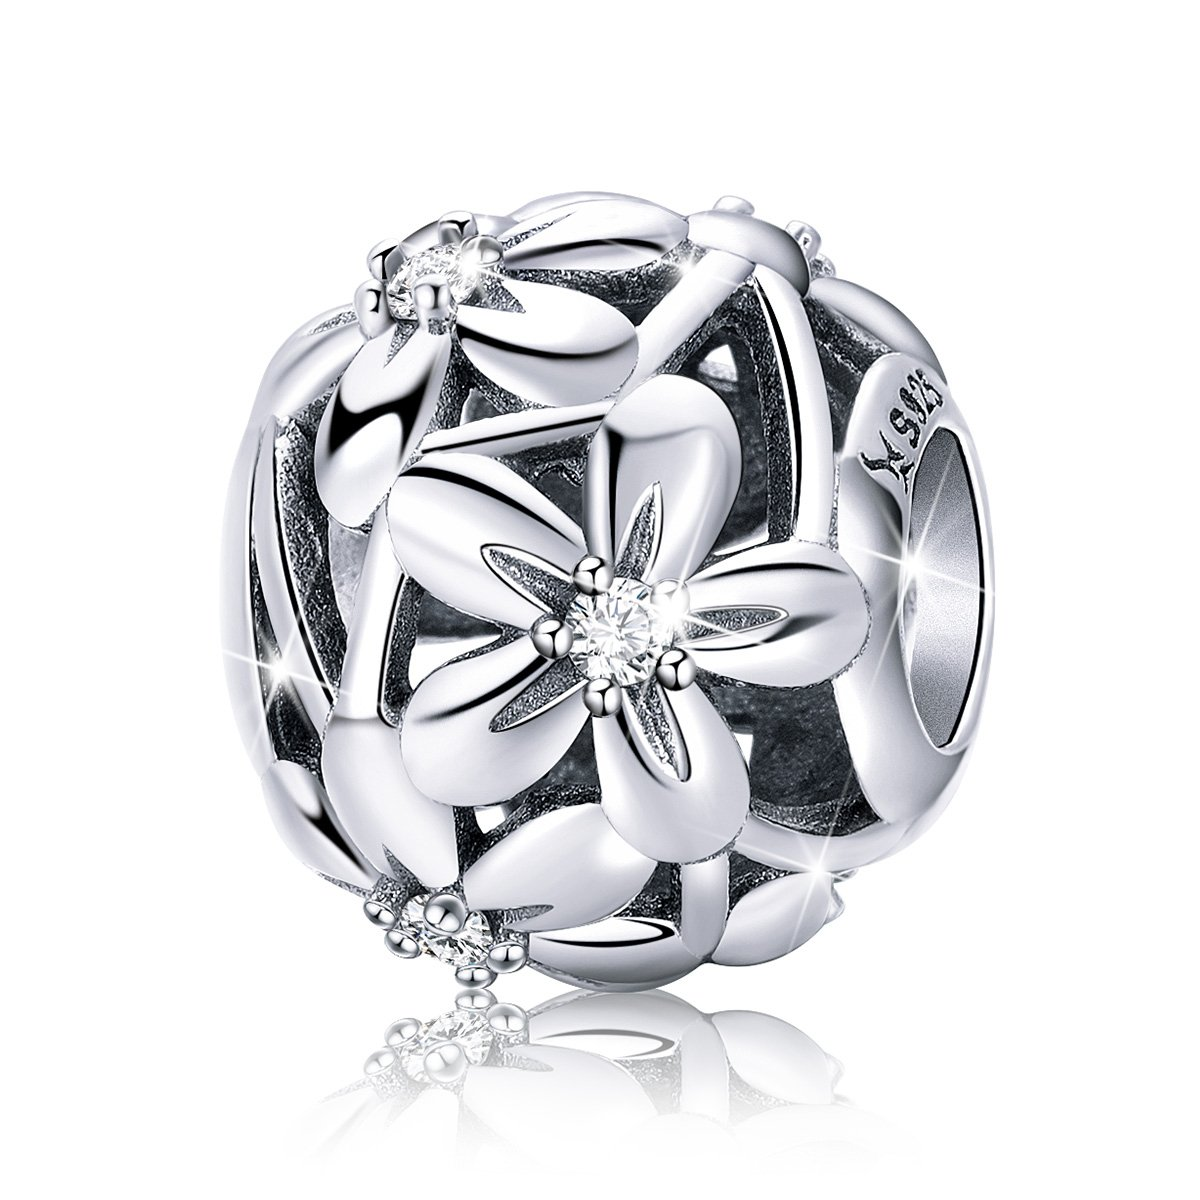 BAMOER Daisy Flowers 925 Sterling Silver Bead Charm for Bracelet and Necklace Birthday Gift